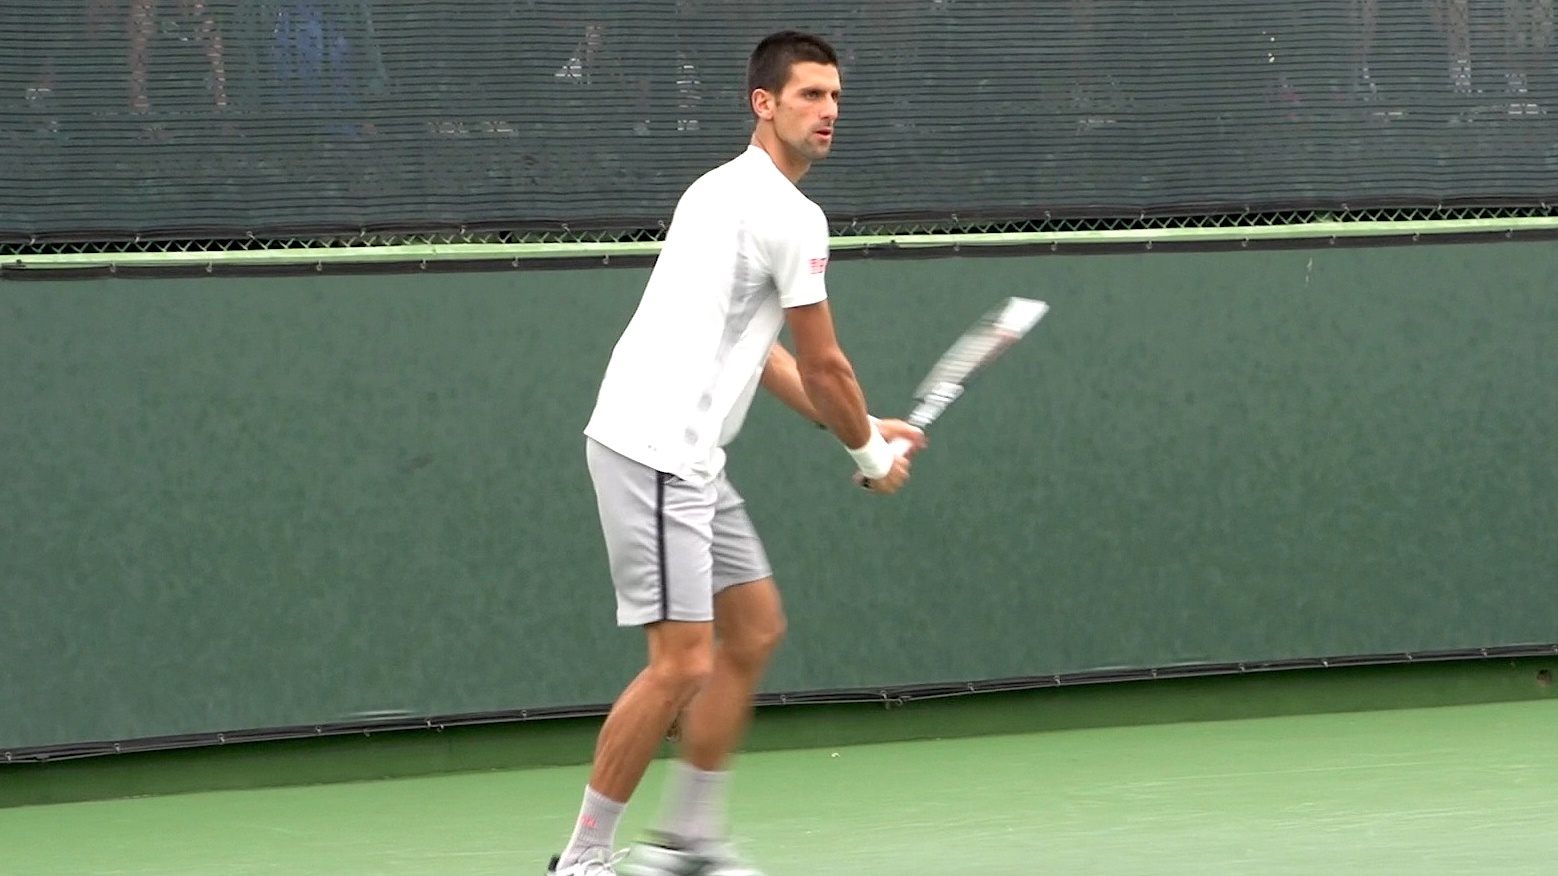 novak-djokovic-backhand - Free Tennis Lessons from Essential Tennis ba8111184c9af